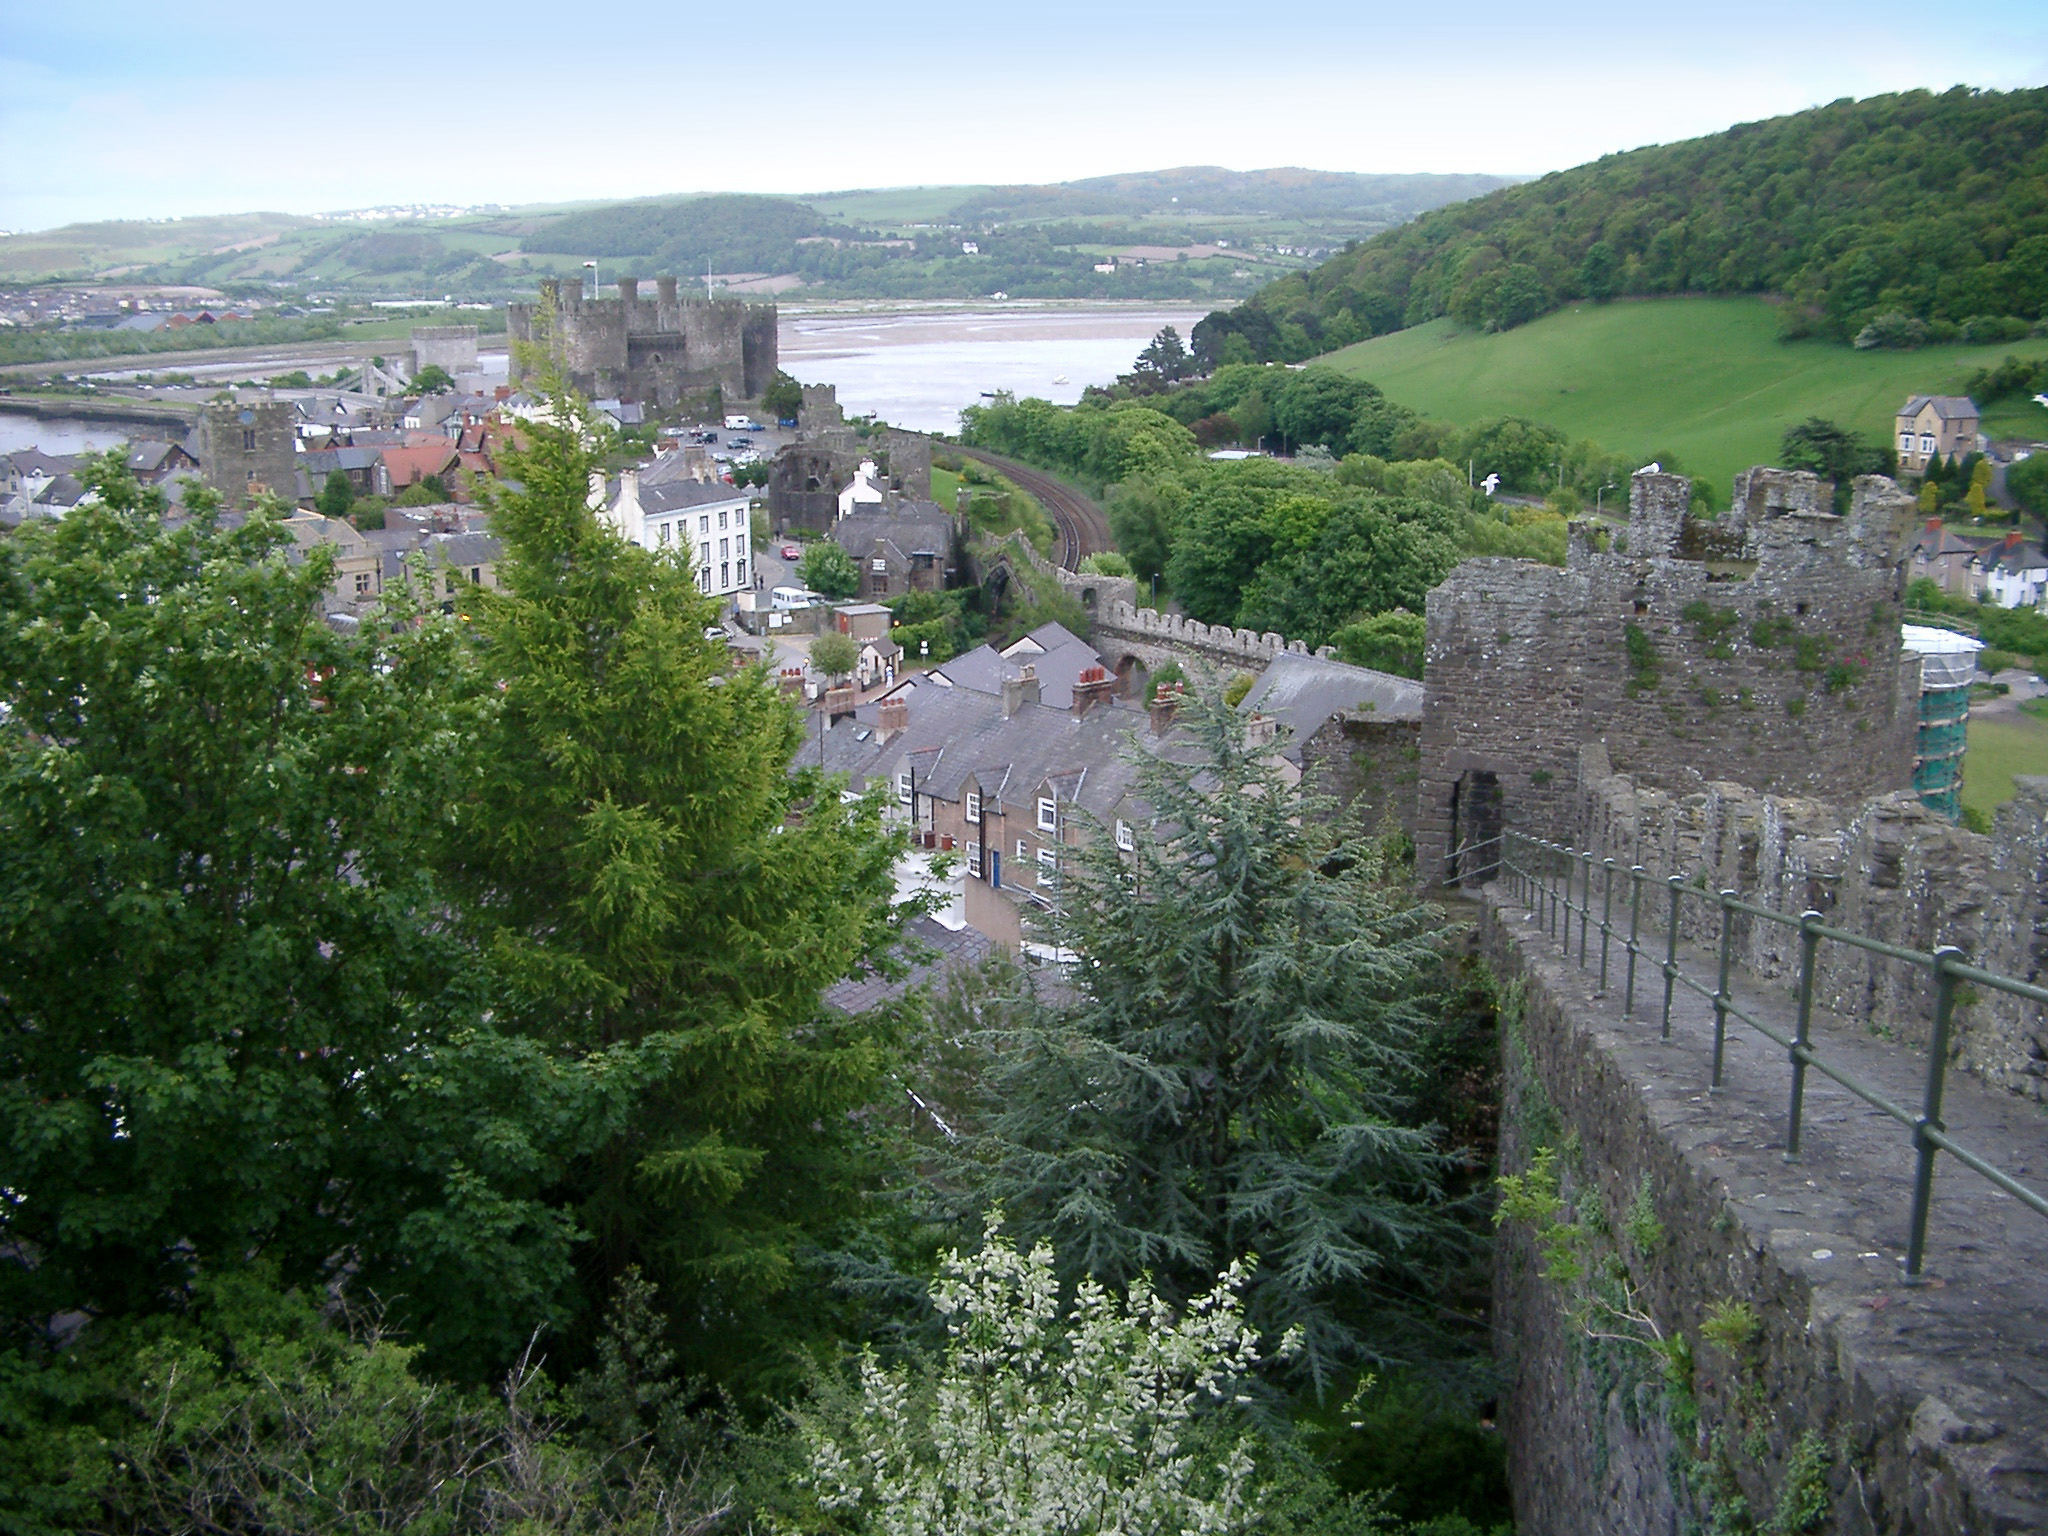 Historic crenellated stone walls surrounding the walled town of Conway, Wales with a scenic view down to the coast